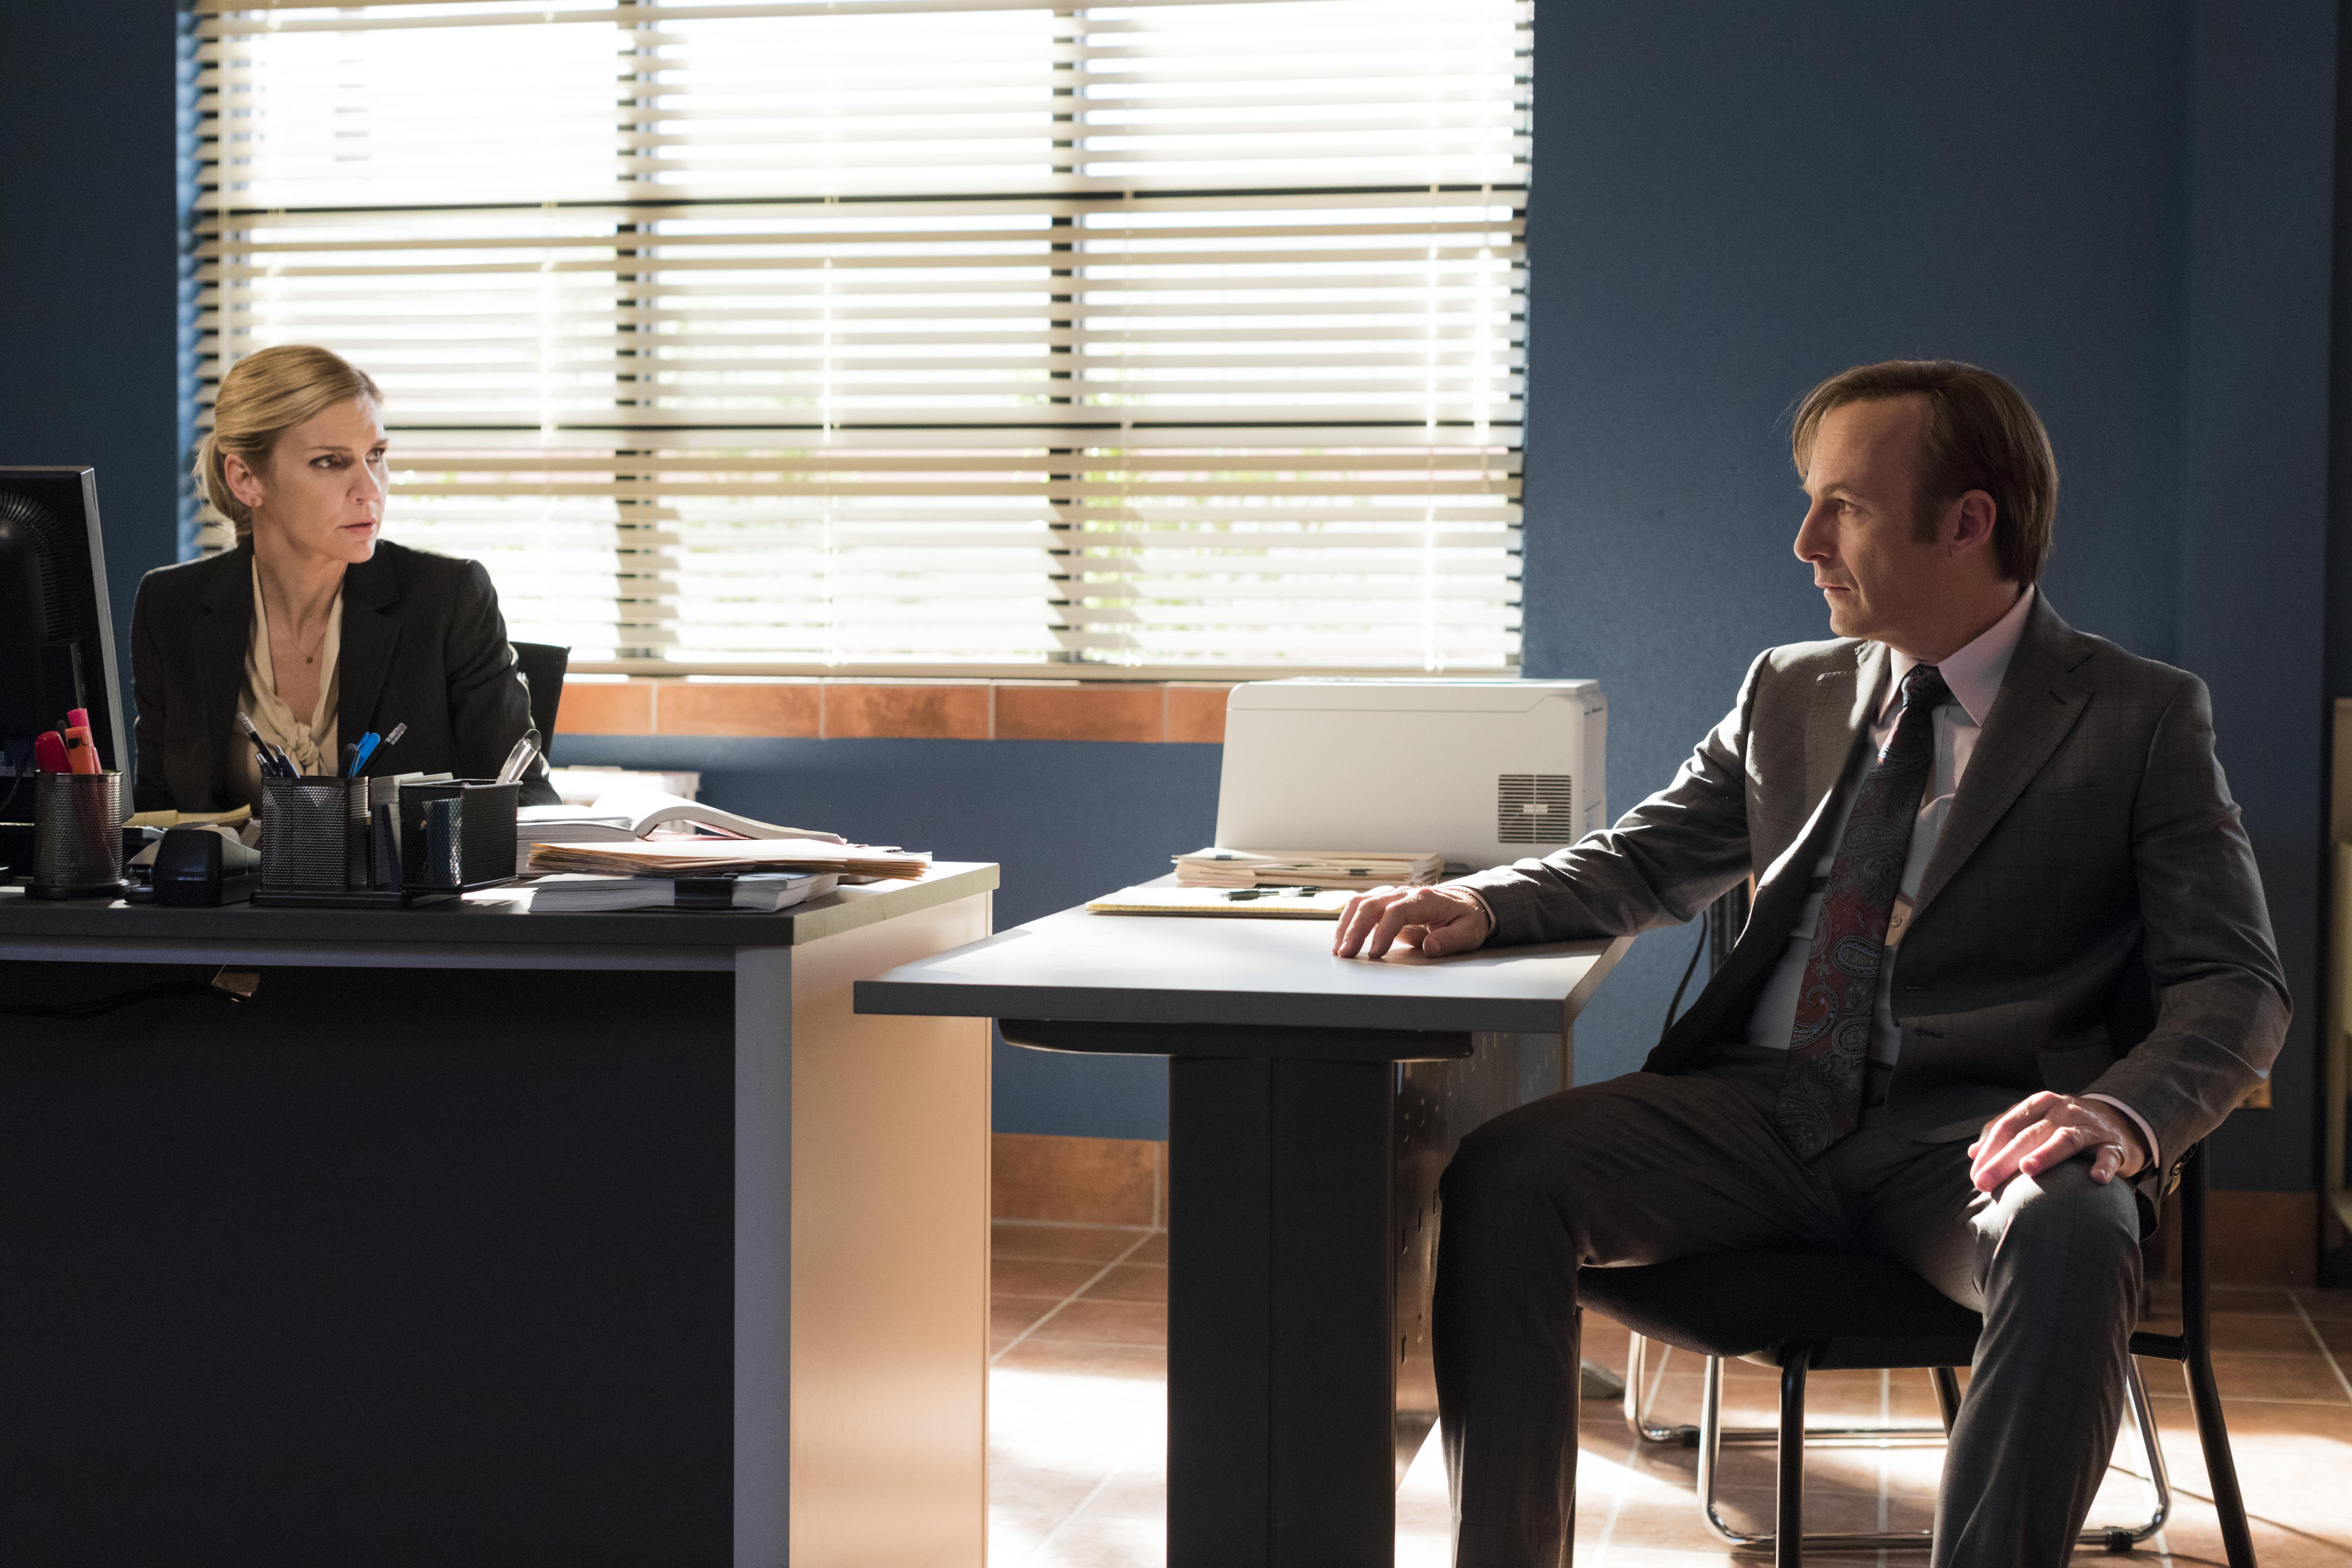 the season premiere of AMC's Breaking Bad spin-off, Better Call Saul ...